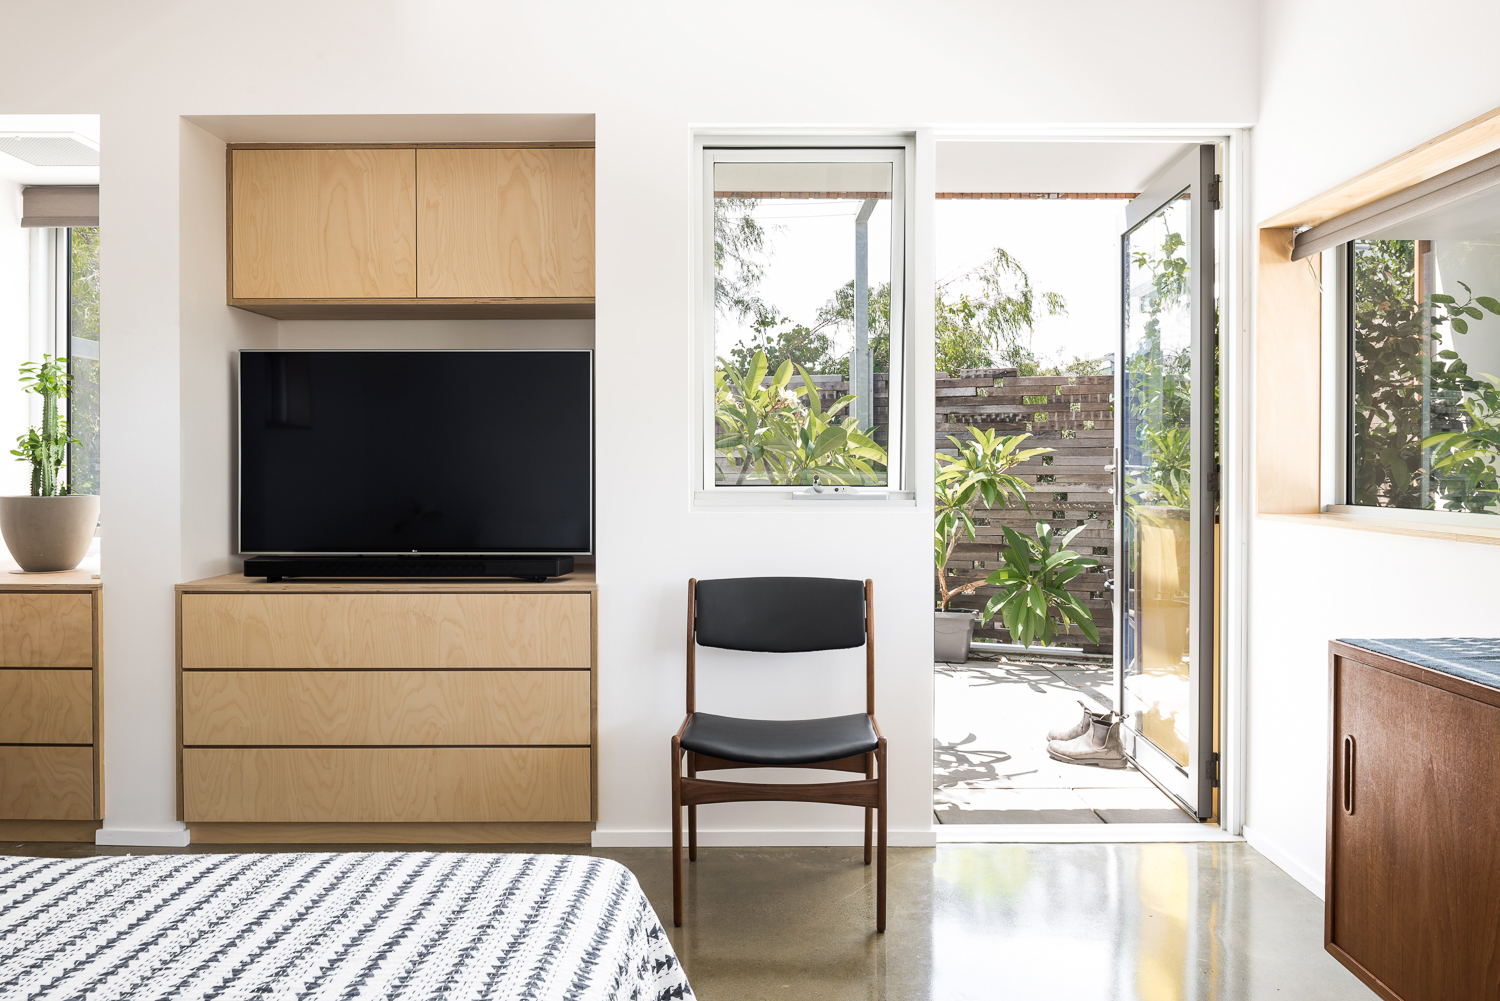 Gallery Of Silver Street House By Ehdo Architecture Local Design And Interiors South Fremantle, Wa Image 15